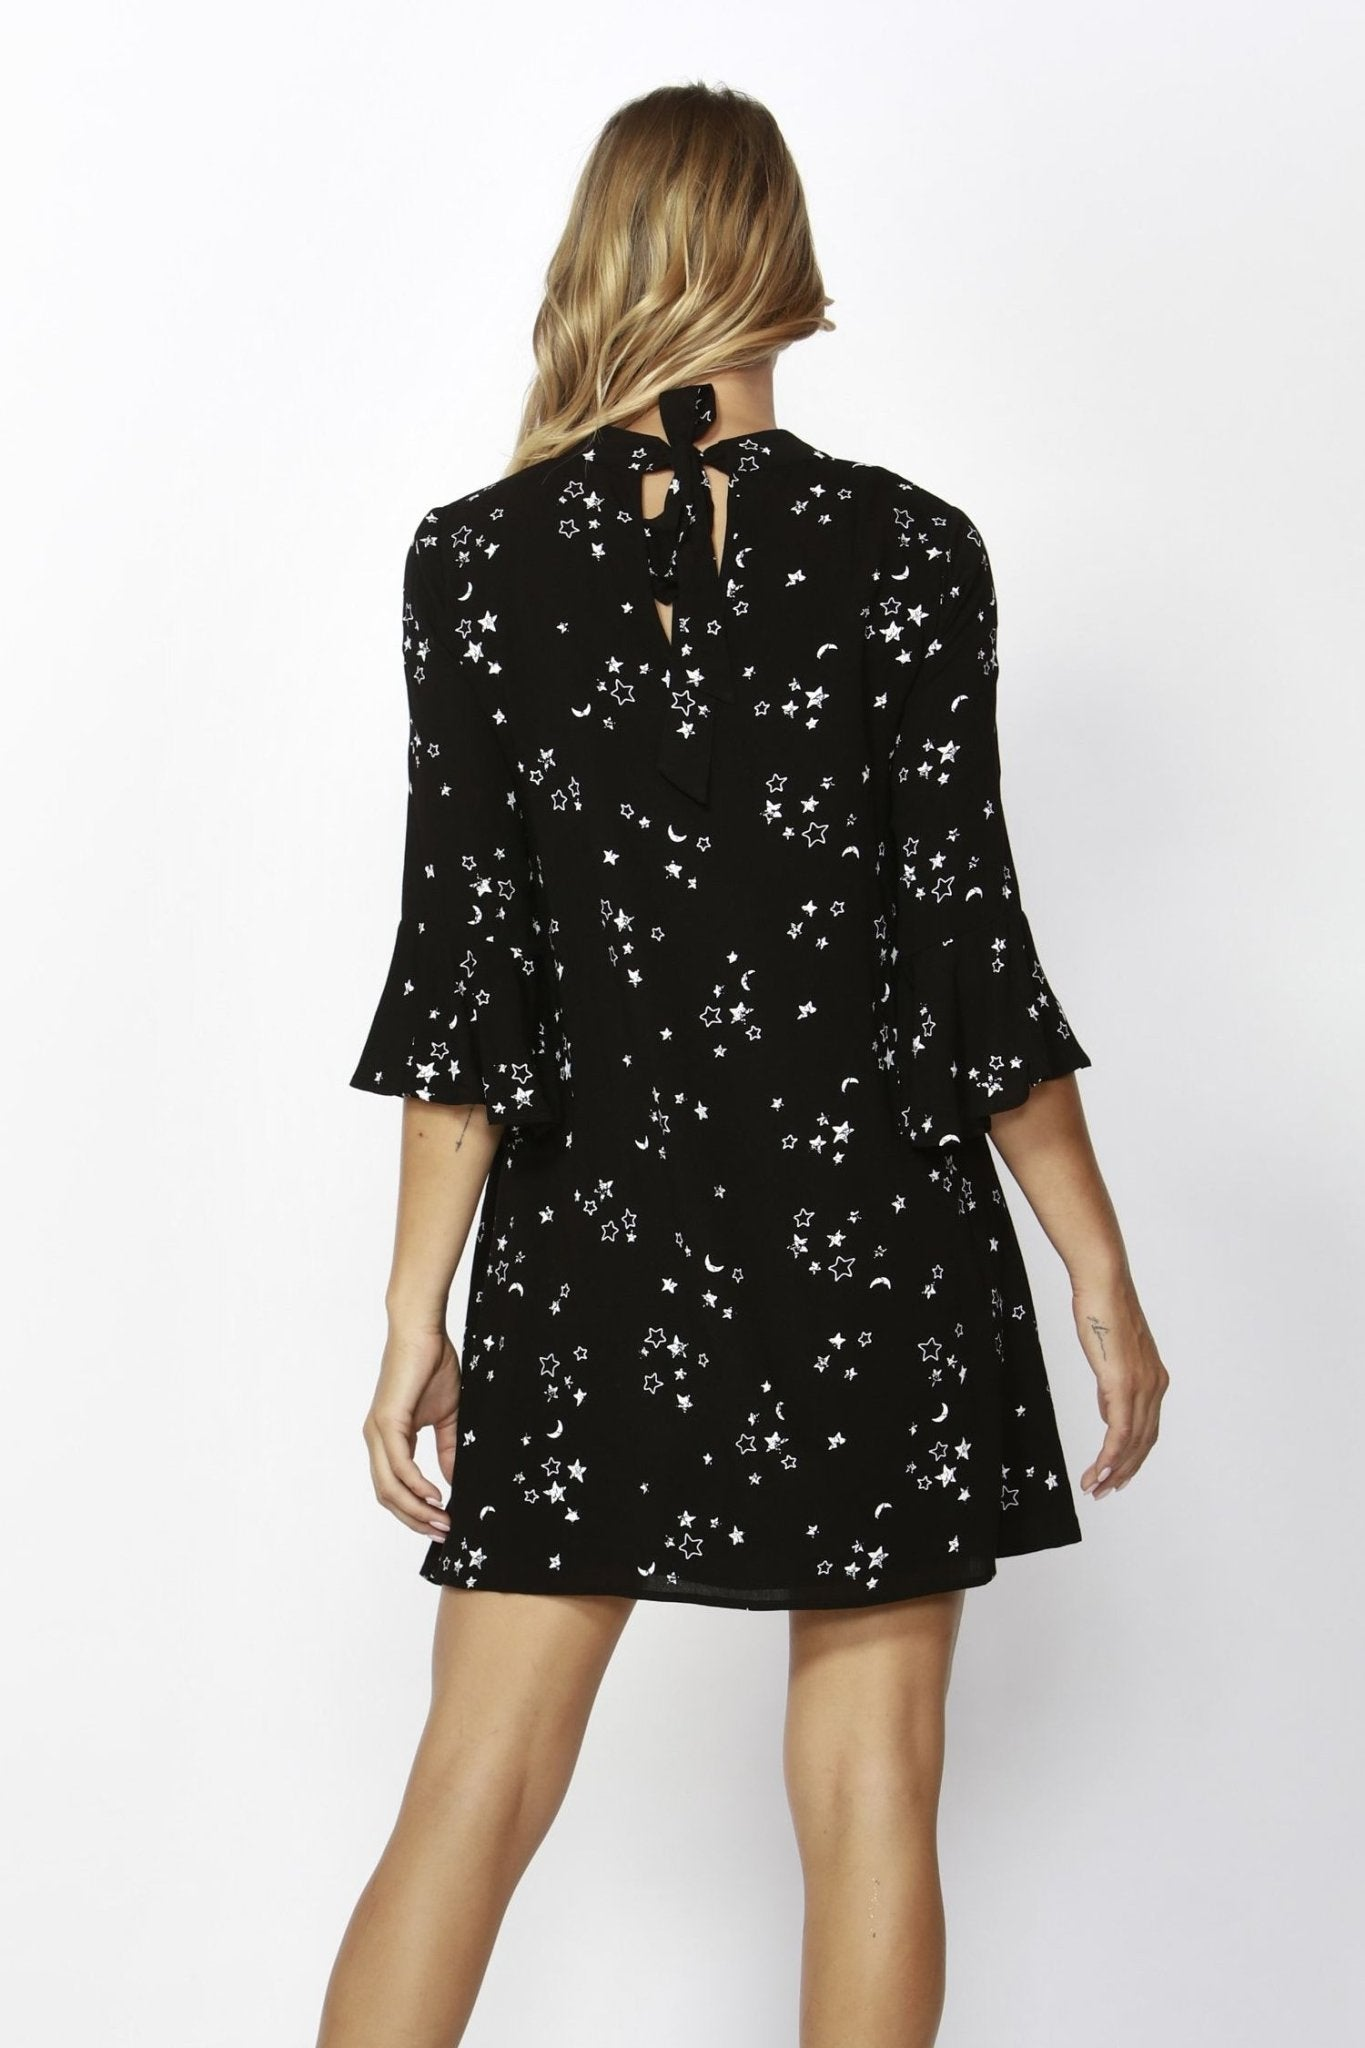 Sass Galaxy Print Bell Sleeve Mini Dress in Black Size 10 or 12 Only - Hey Sara